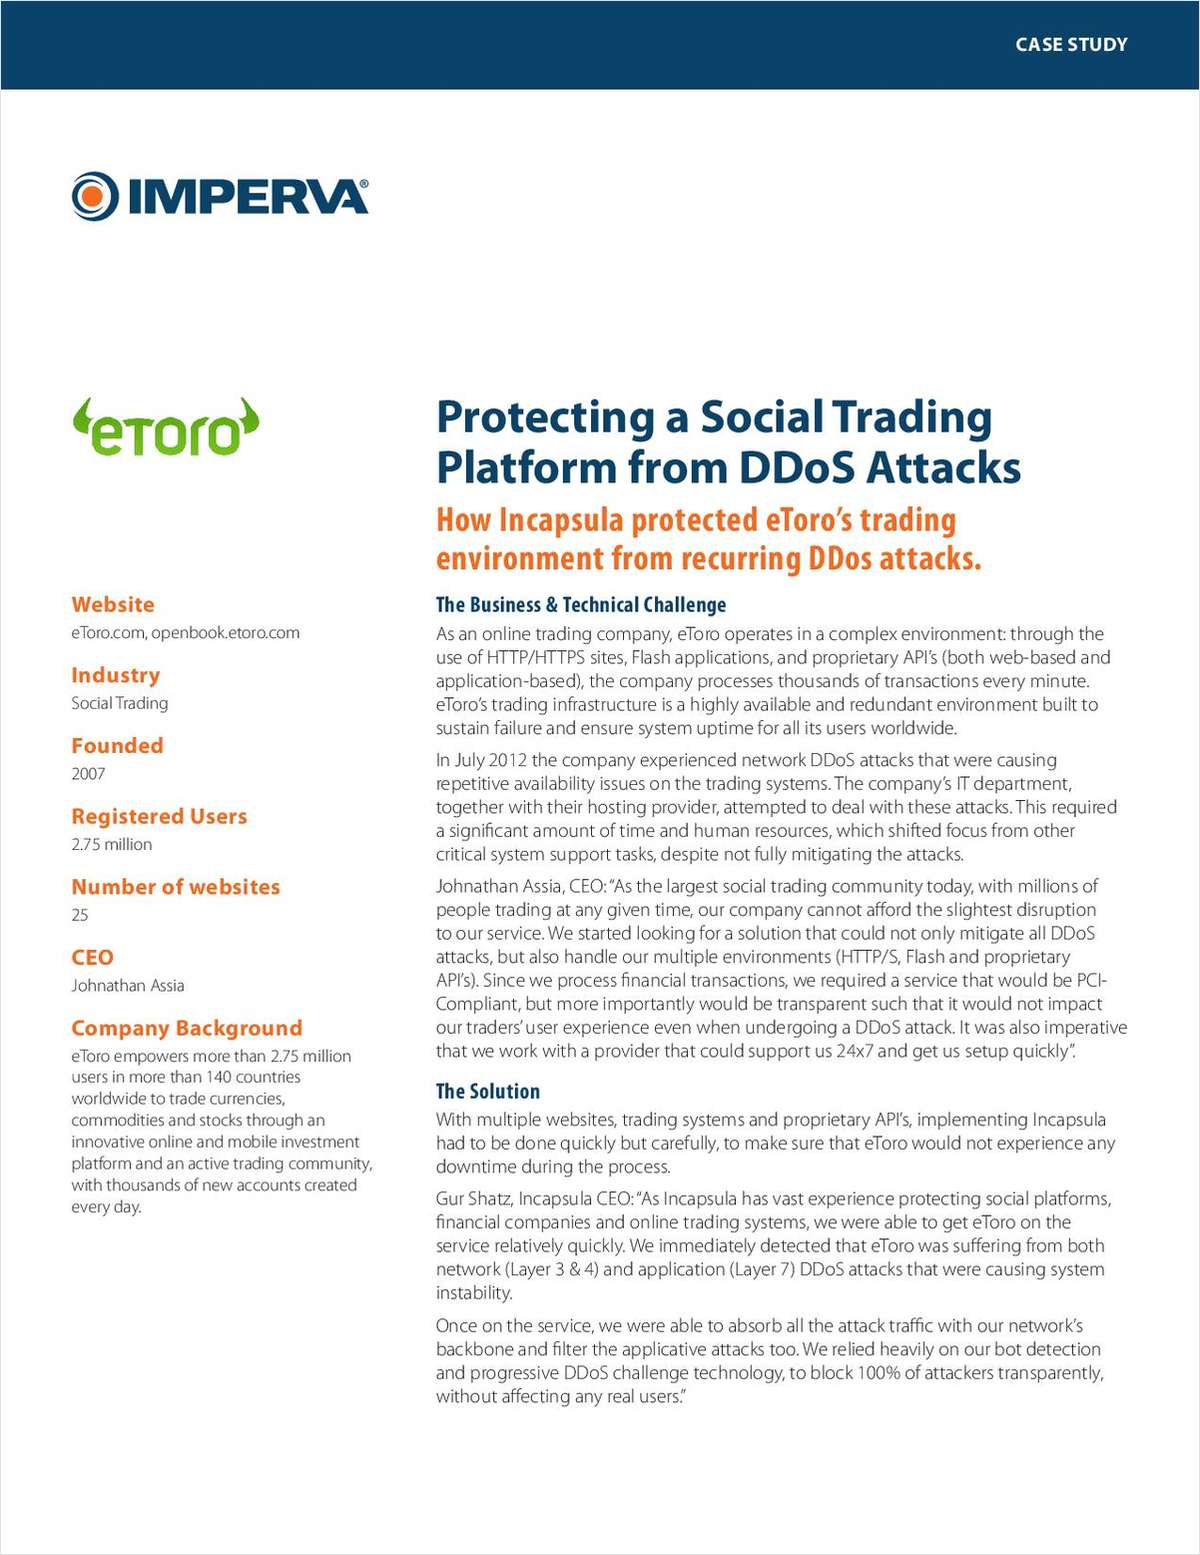 eToro Maximizes Availability of Its Online Trading Operations with Incapsula